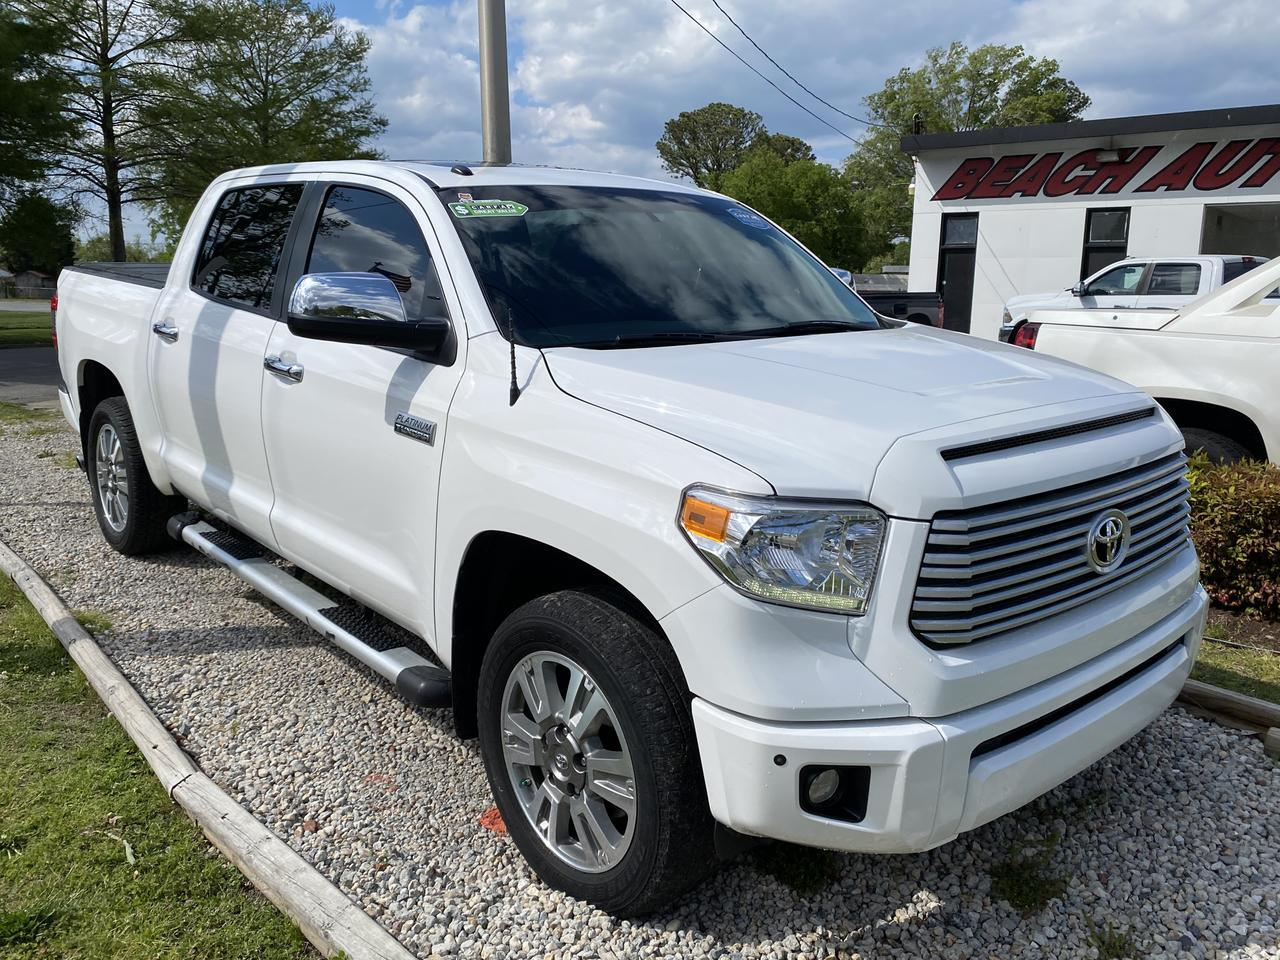 2016 TOYOTA TUNDRA PLATINUM CREWMAX 4X4, WARRANTY, LEATHER, NAV, HEATED SEATS, SUNROOF, BACKUP CAM, 1 OWNER! Norfolk VA